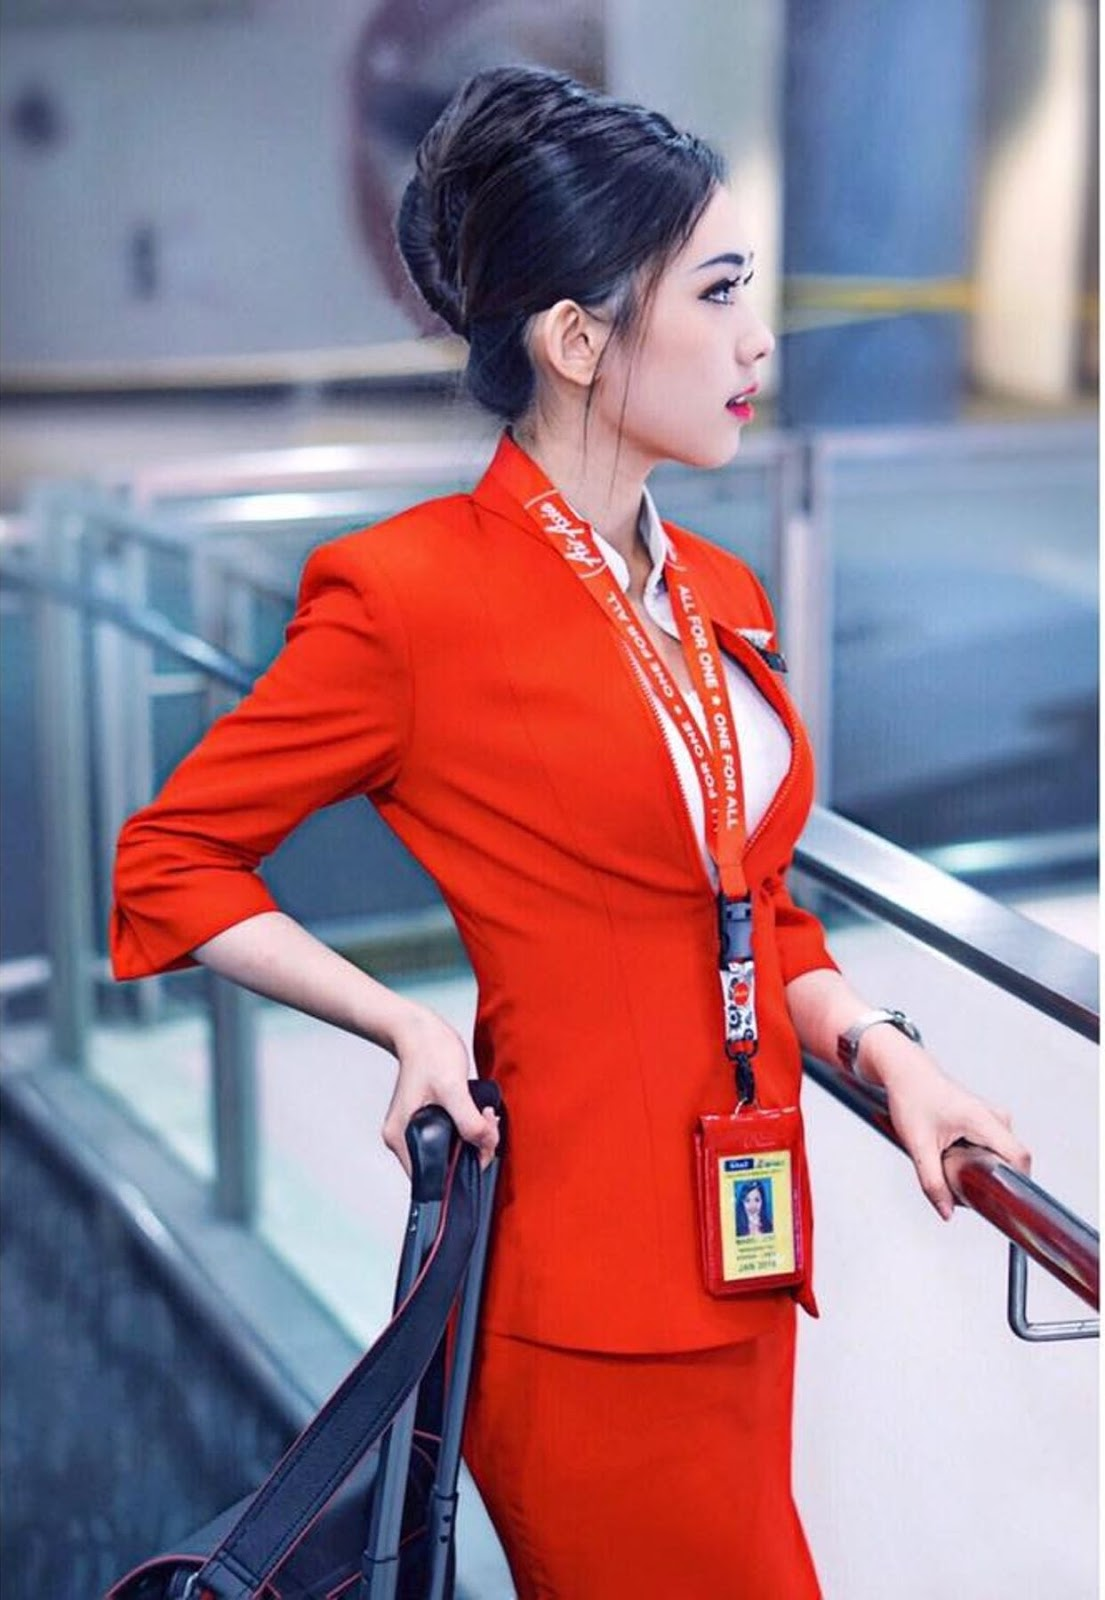 AirAsia flight attendant 'soaring high', posted on Tuesday, 23 October 2018